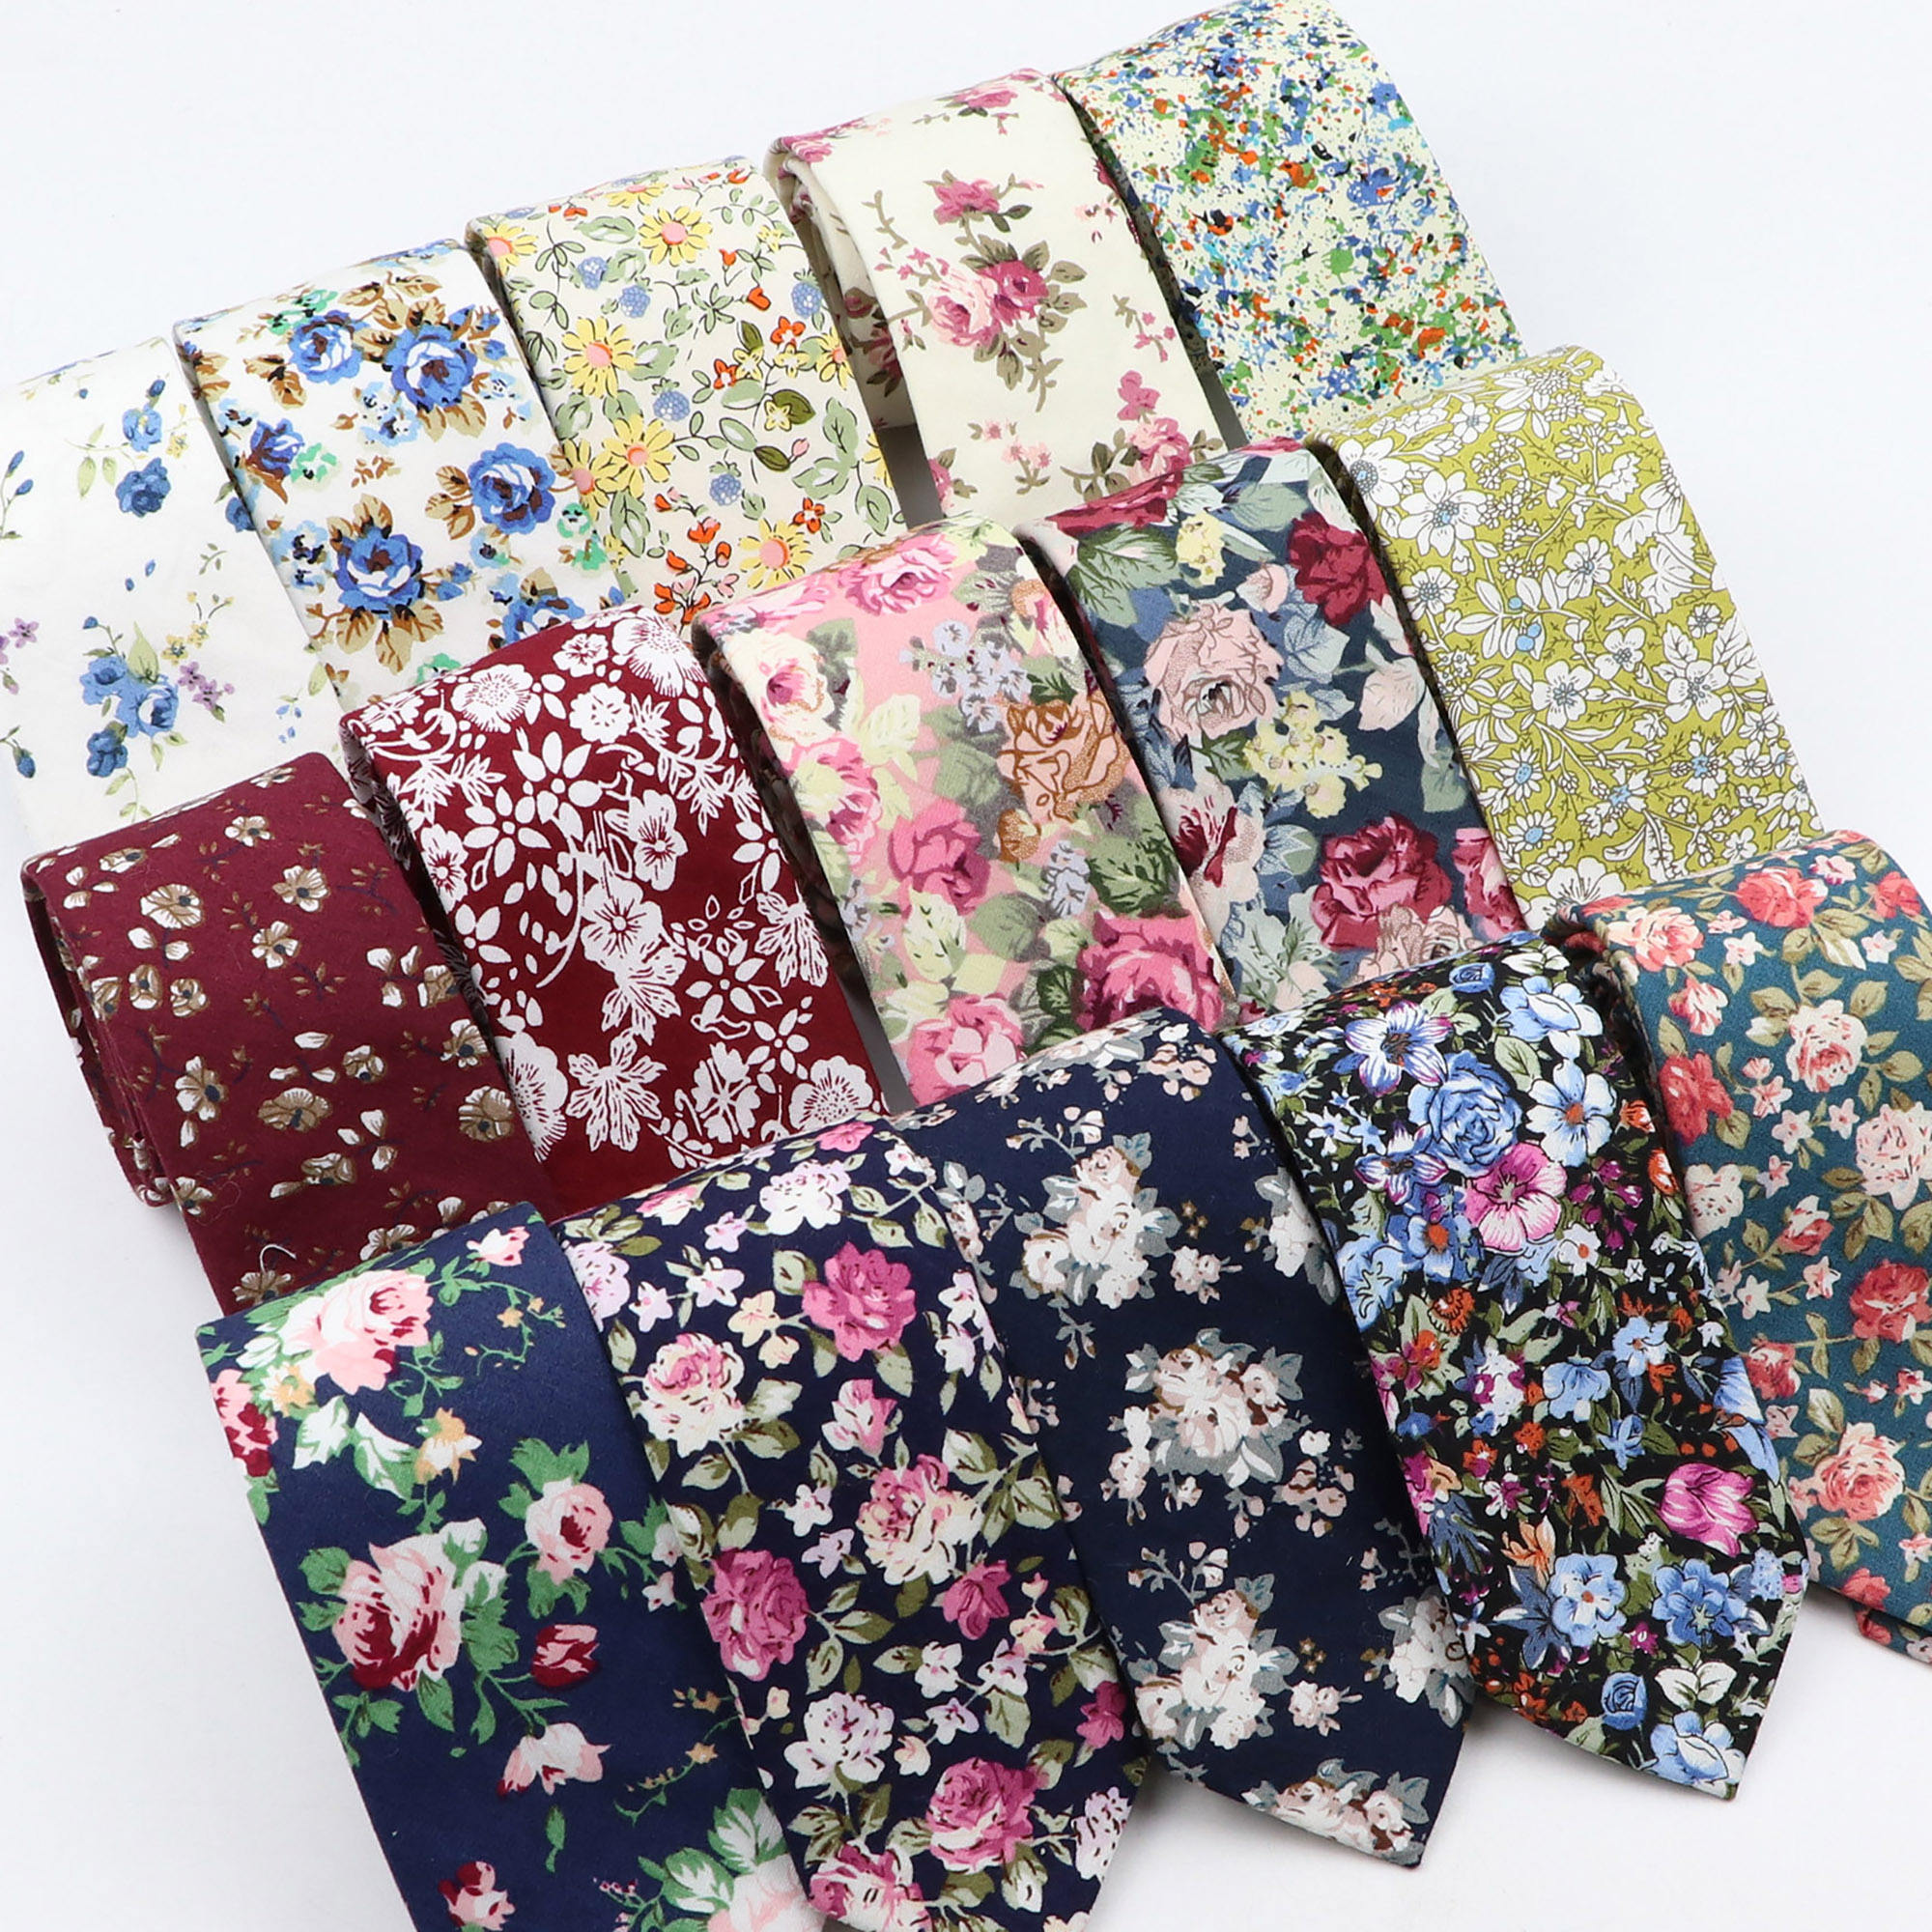 Floral Printed 6cm Neck Tie 100% Cotton Women&Men Wedding Butterfly Dress Tuxedo Gift bow tie Accessory